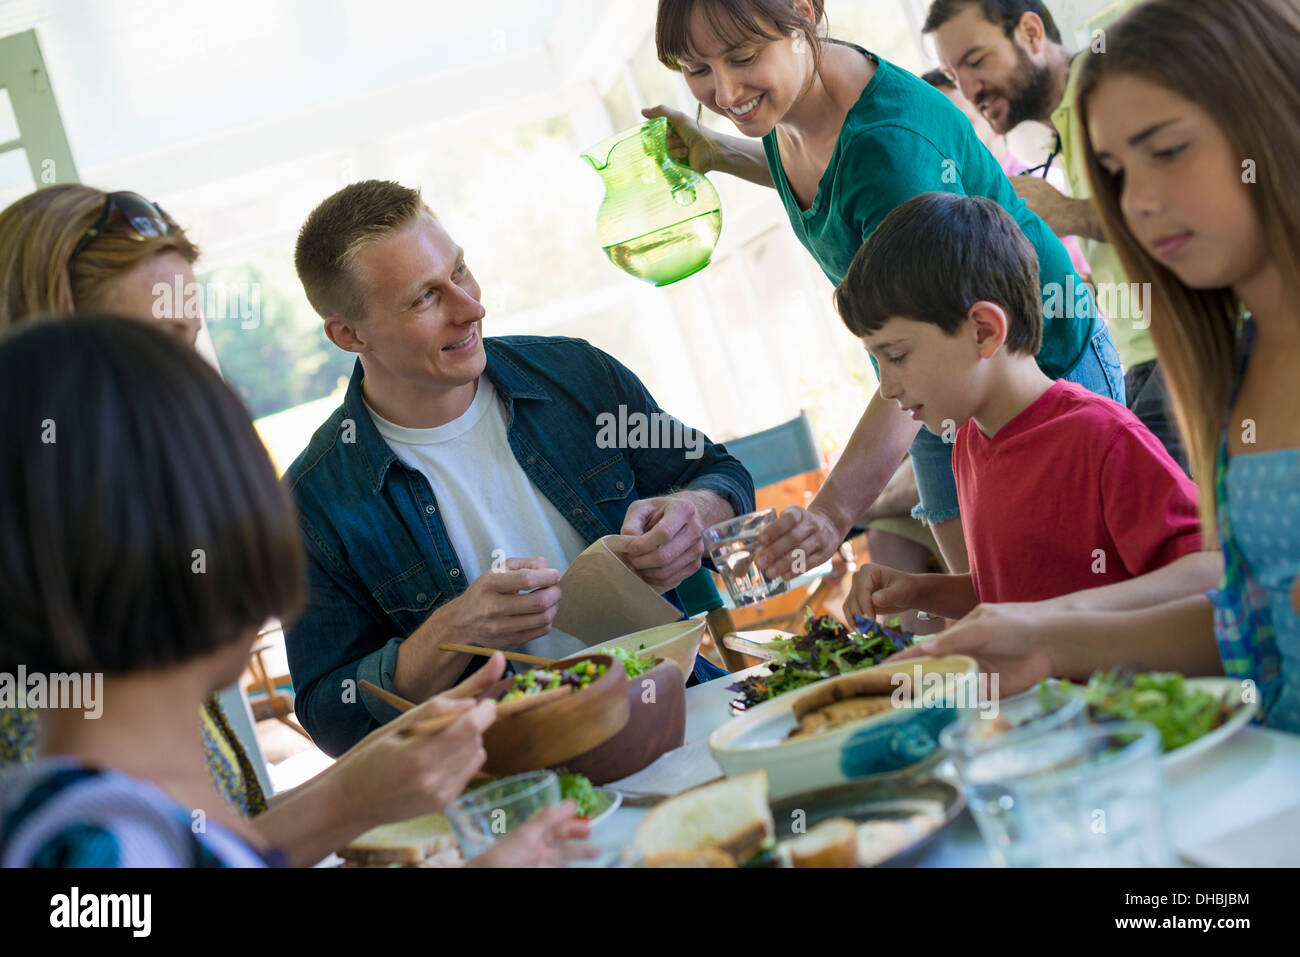 A family party around a table in a cafe. Adults and children. - Stock Image